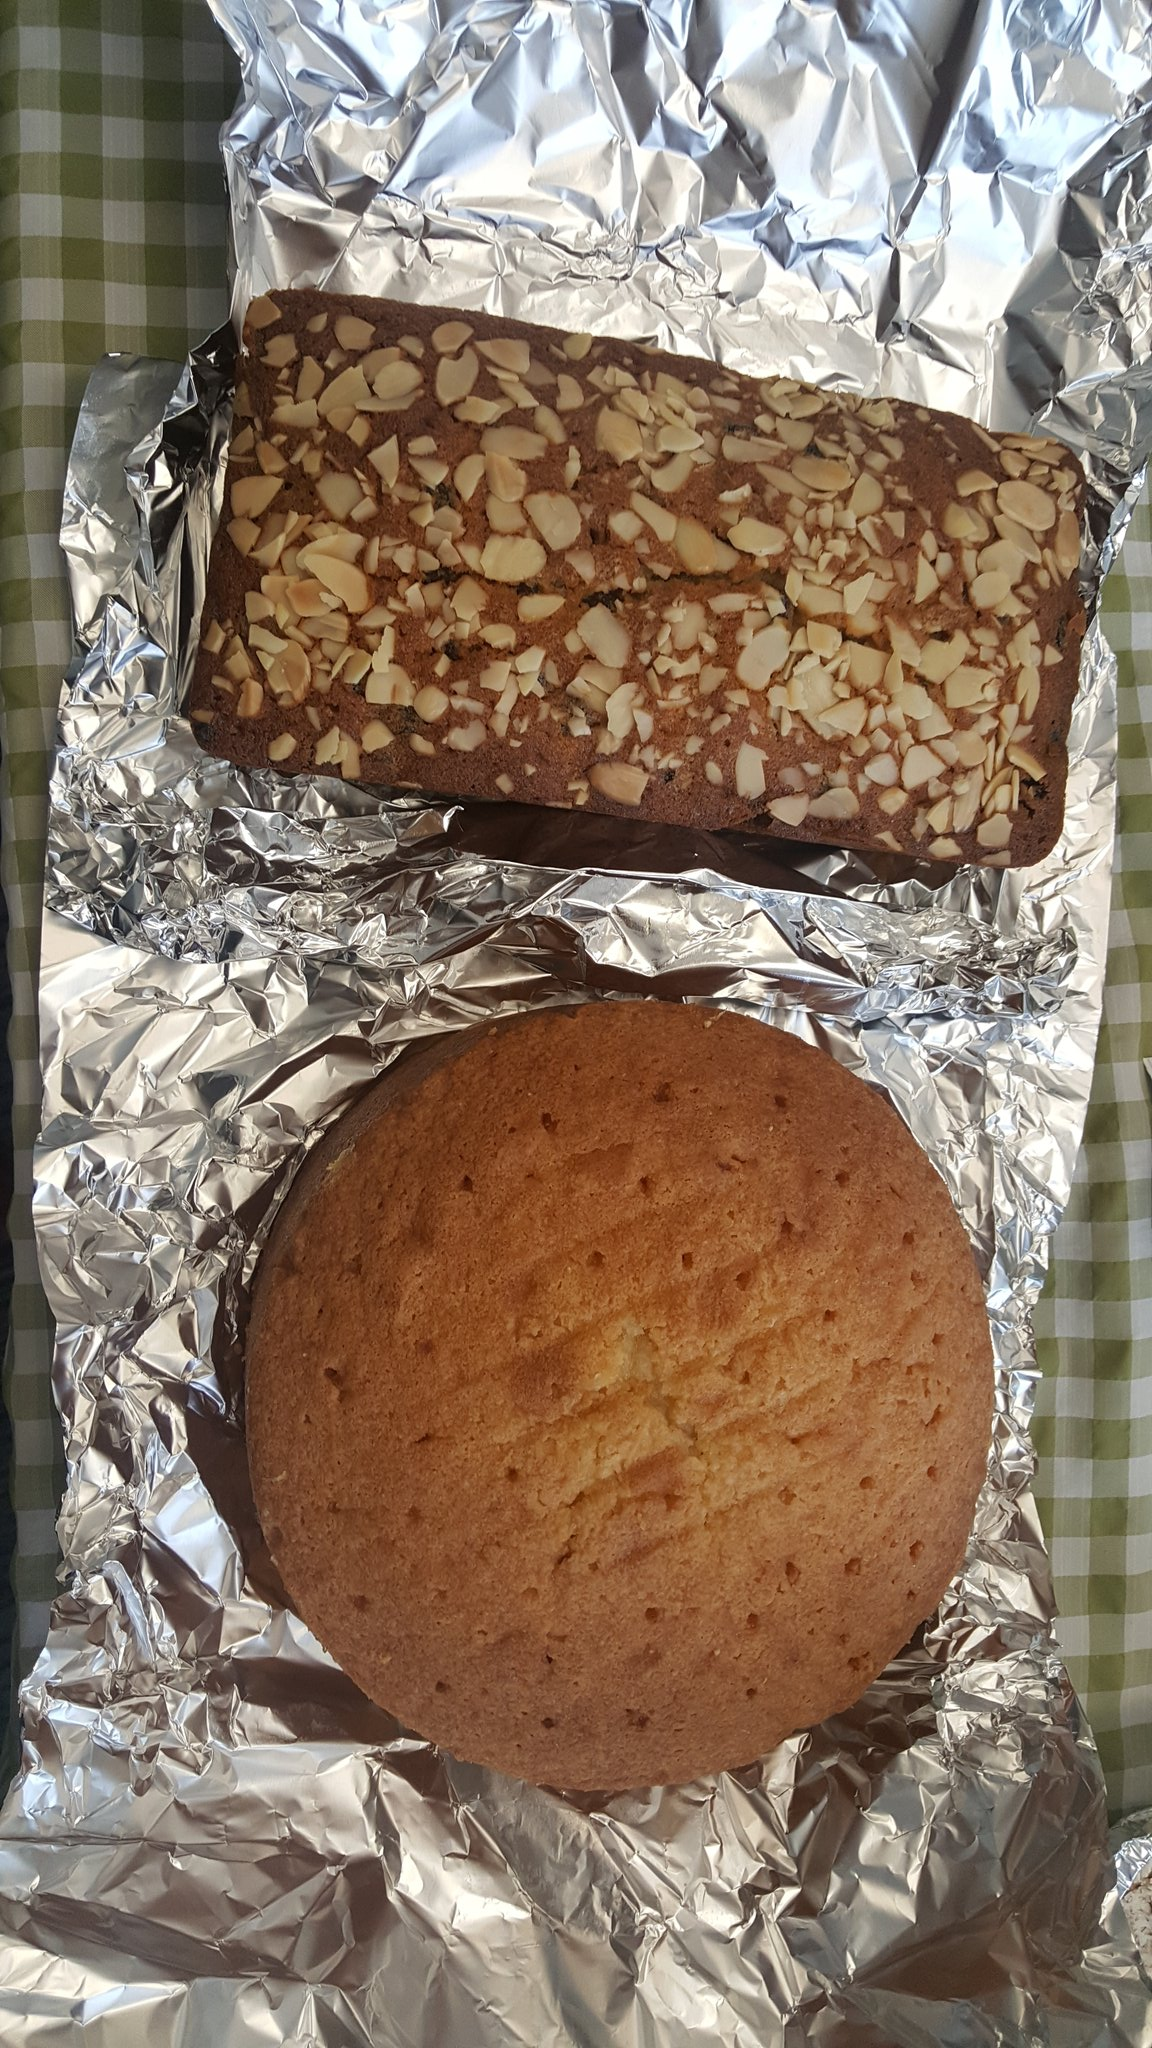 My fruit cake plus almonds and lemon drizzle for #GreatLegalBake Due to a conflict of interest I was excluded from judging by @AcuityLegal https://t.co/rOCMiGTc5B